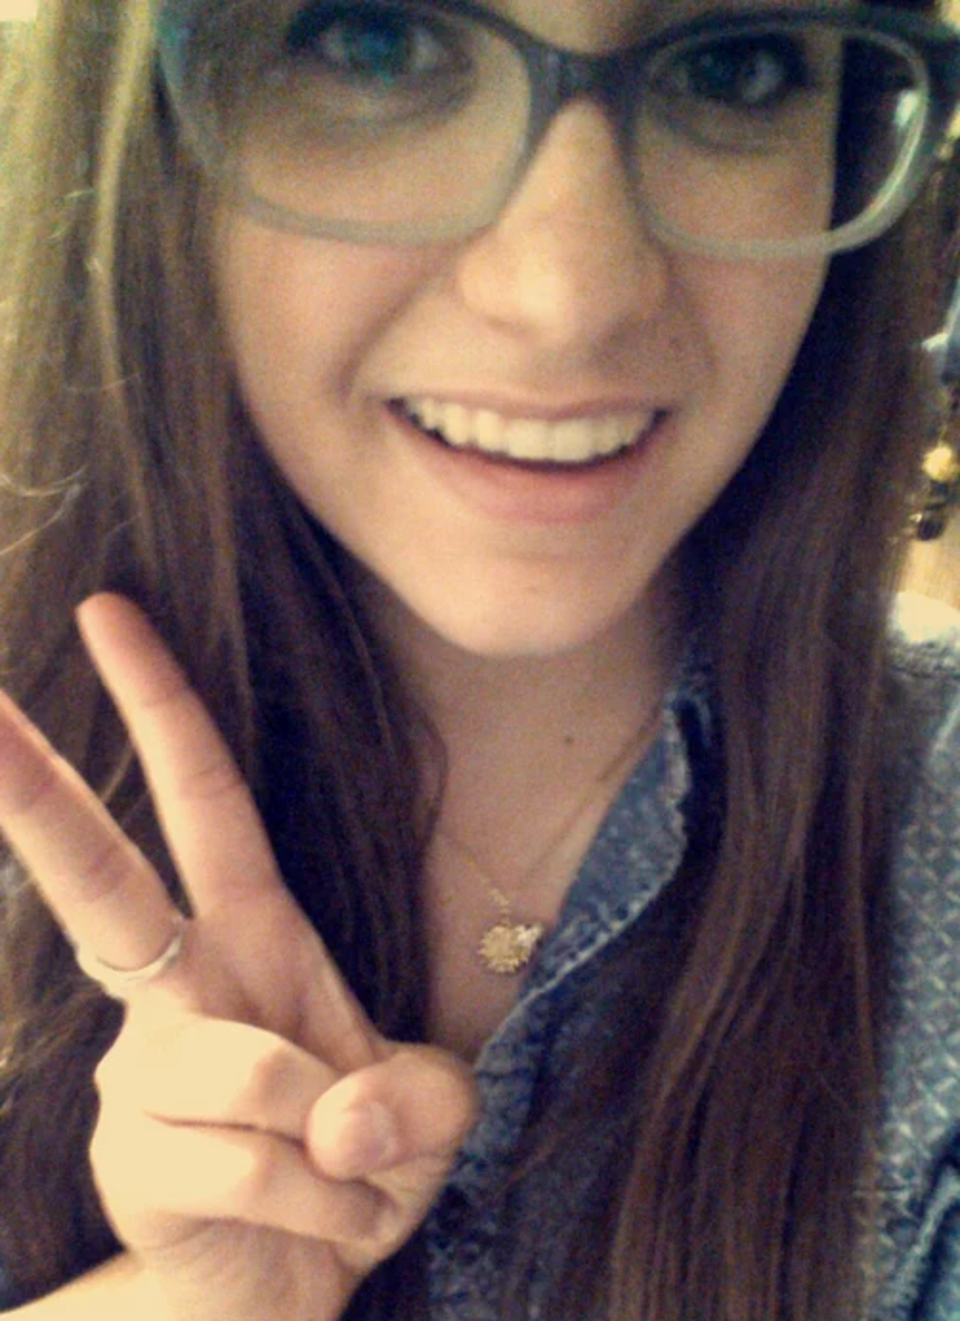 A young brunette woman with peace sign